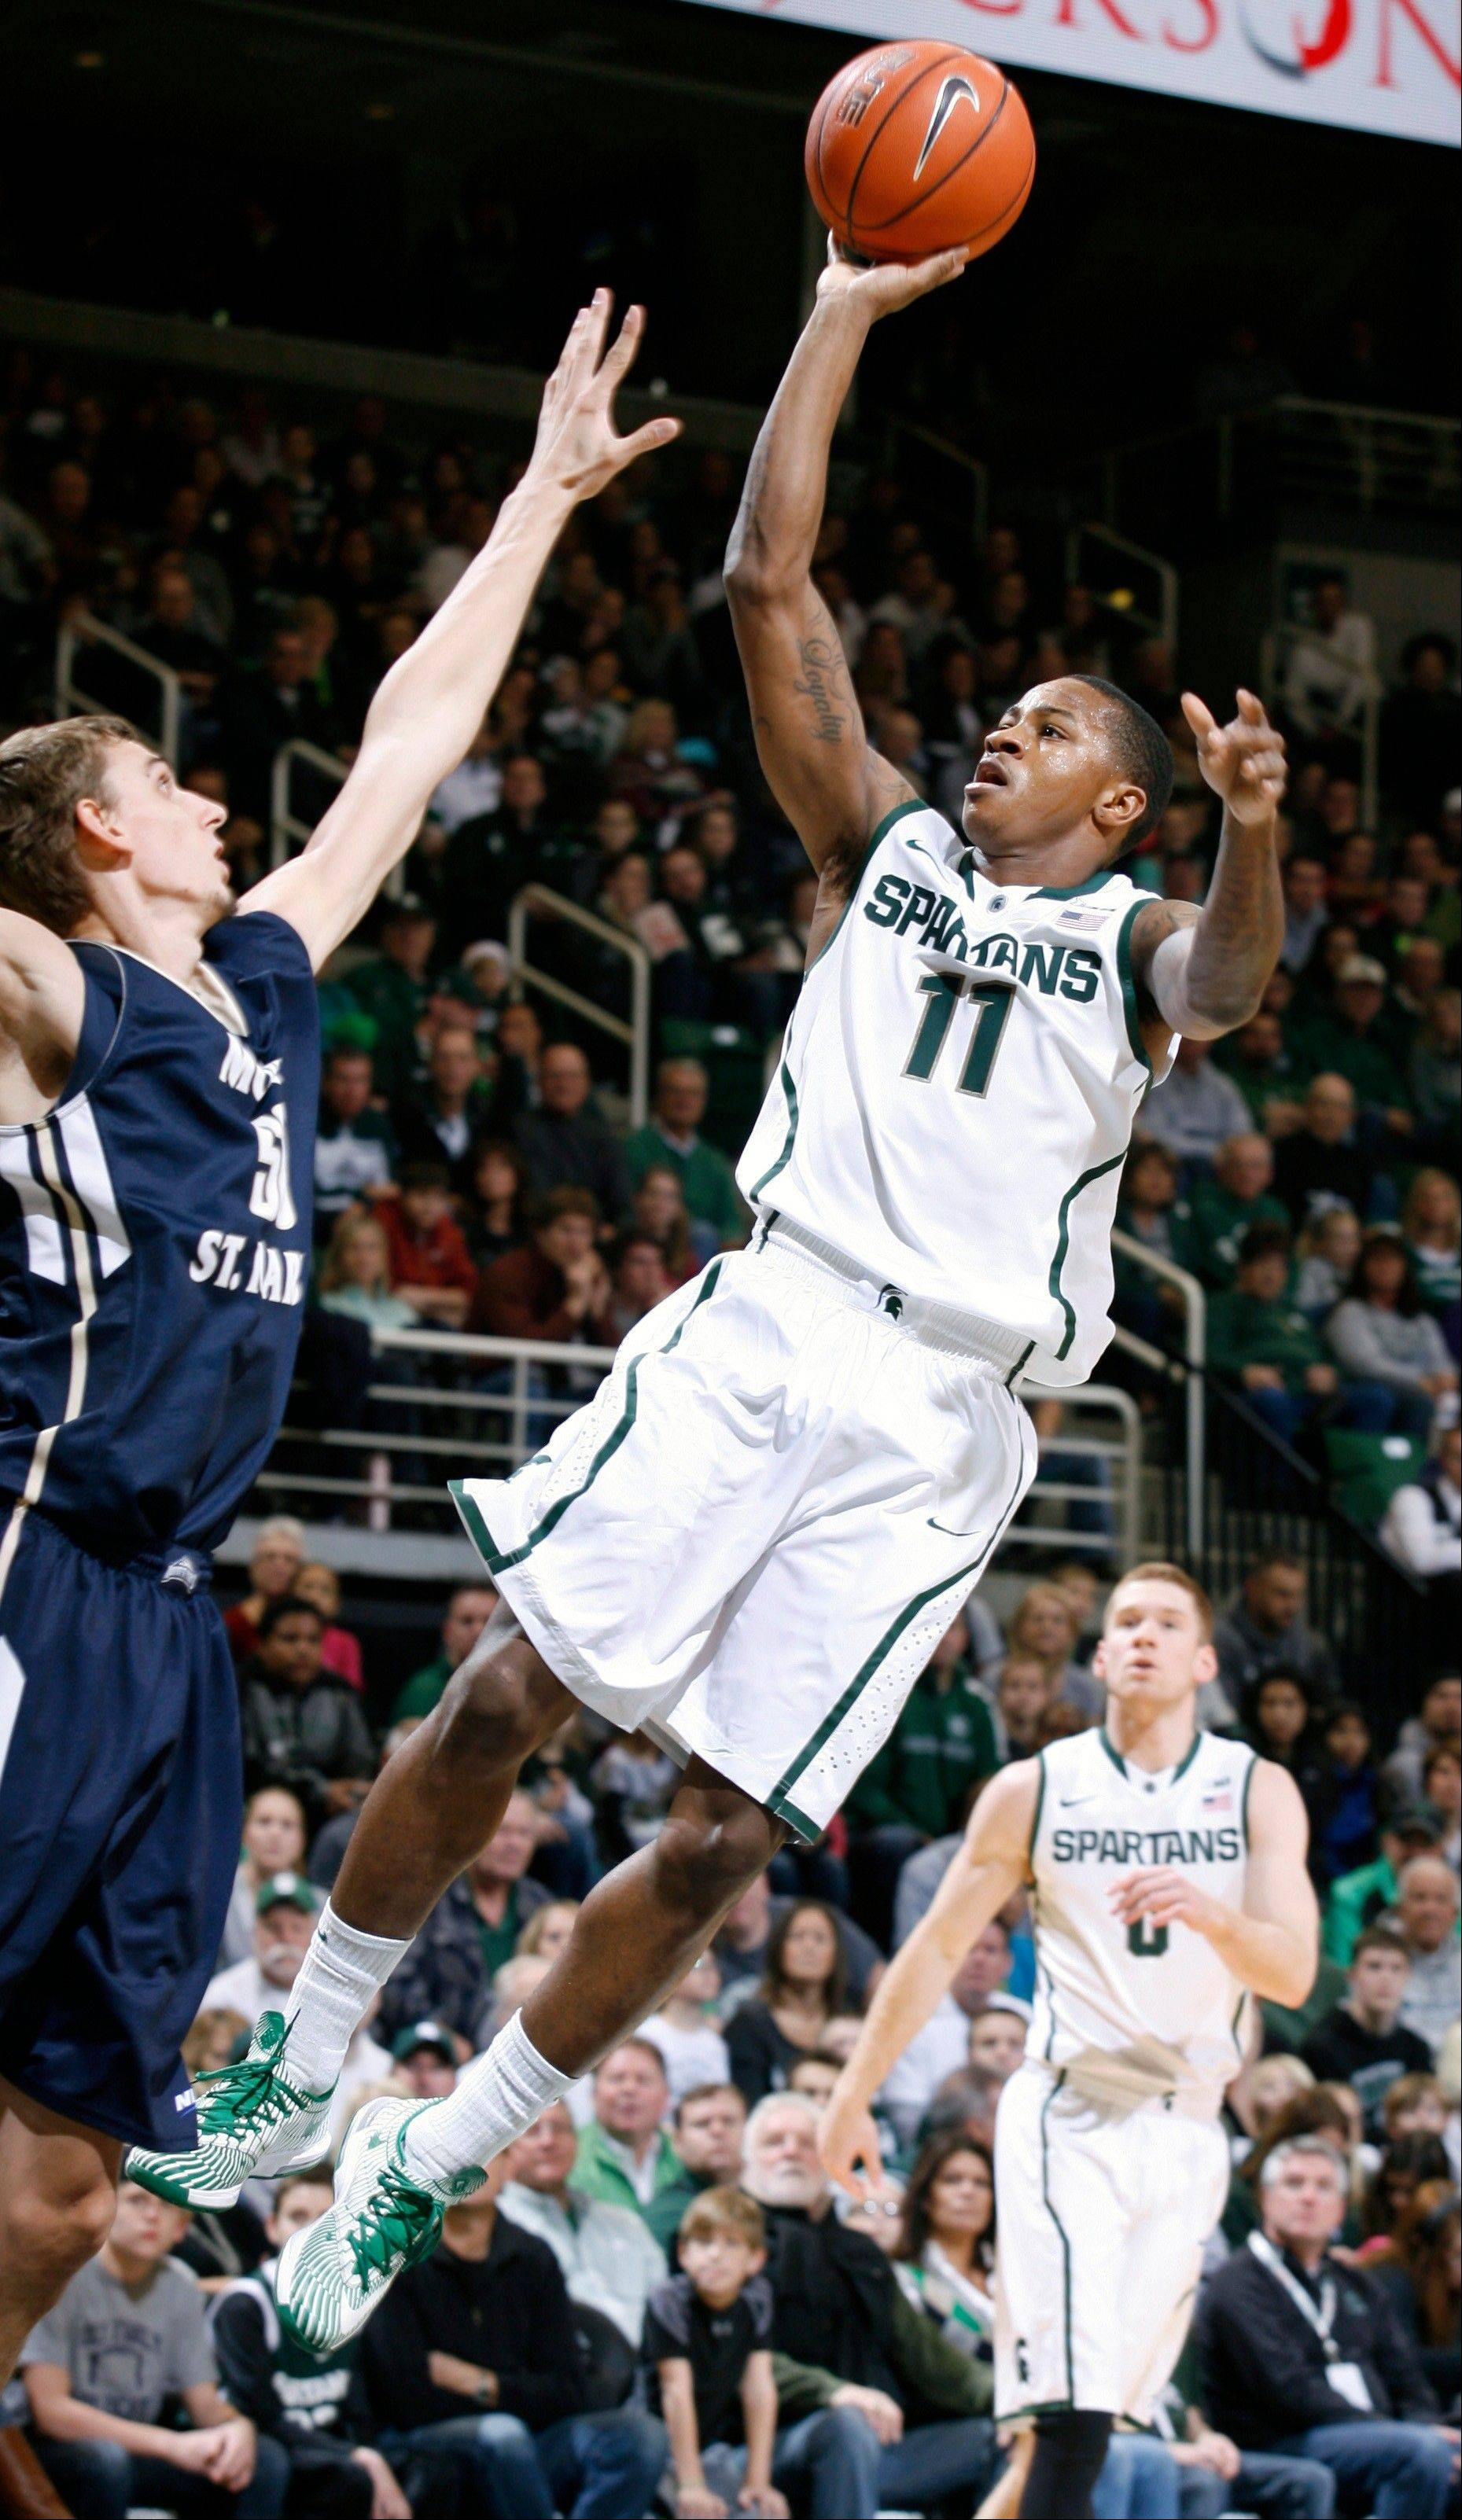 Michigan State's Keith Appling puts up a driving shot against Mount St. Mary's Taylor Danaher, left, during the first half of Friday's game in East Lansing, Mich.